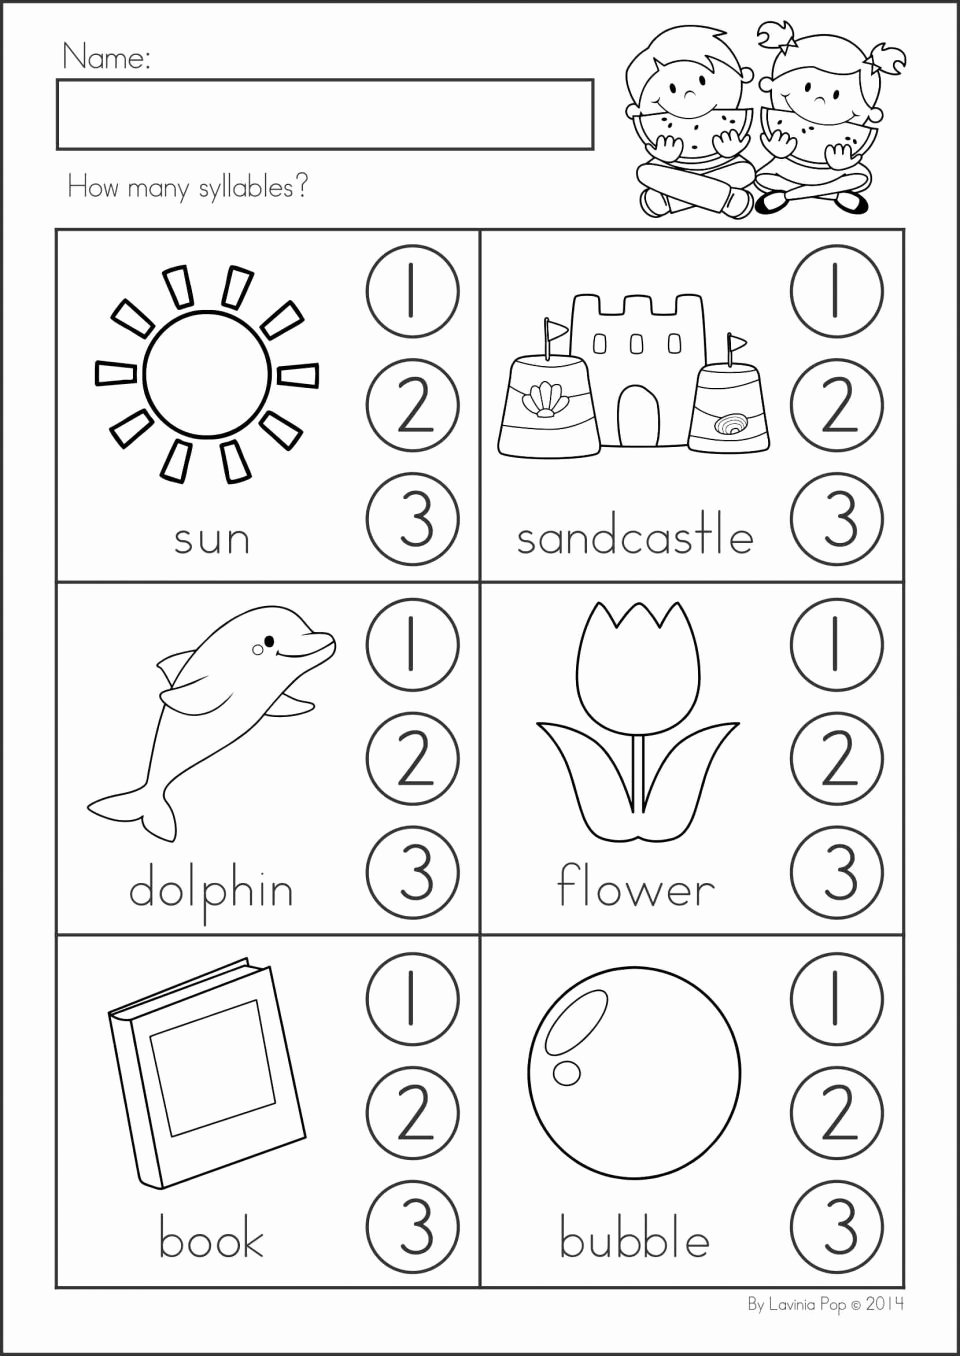 Estimating Quotients Worksheets 5th Grade Ideas Worksheet Grade Geometry Test Printable Activity Sheets